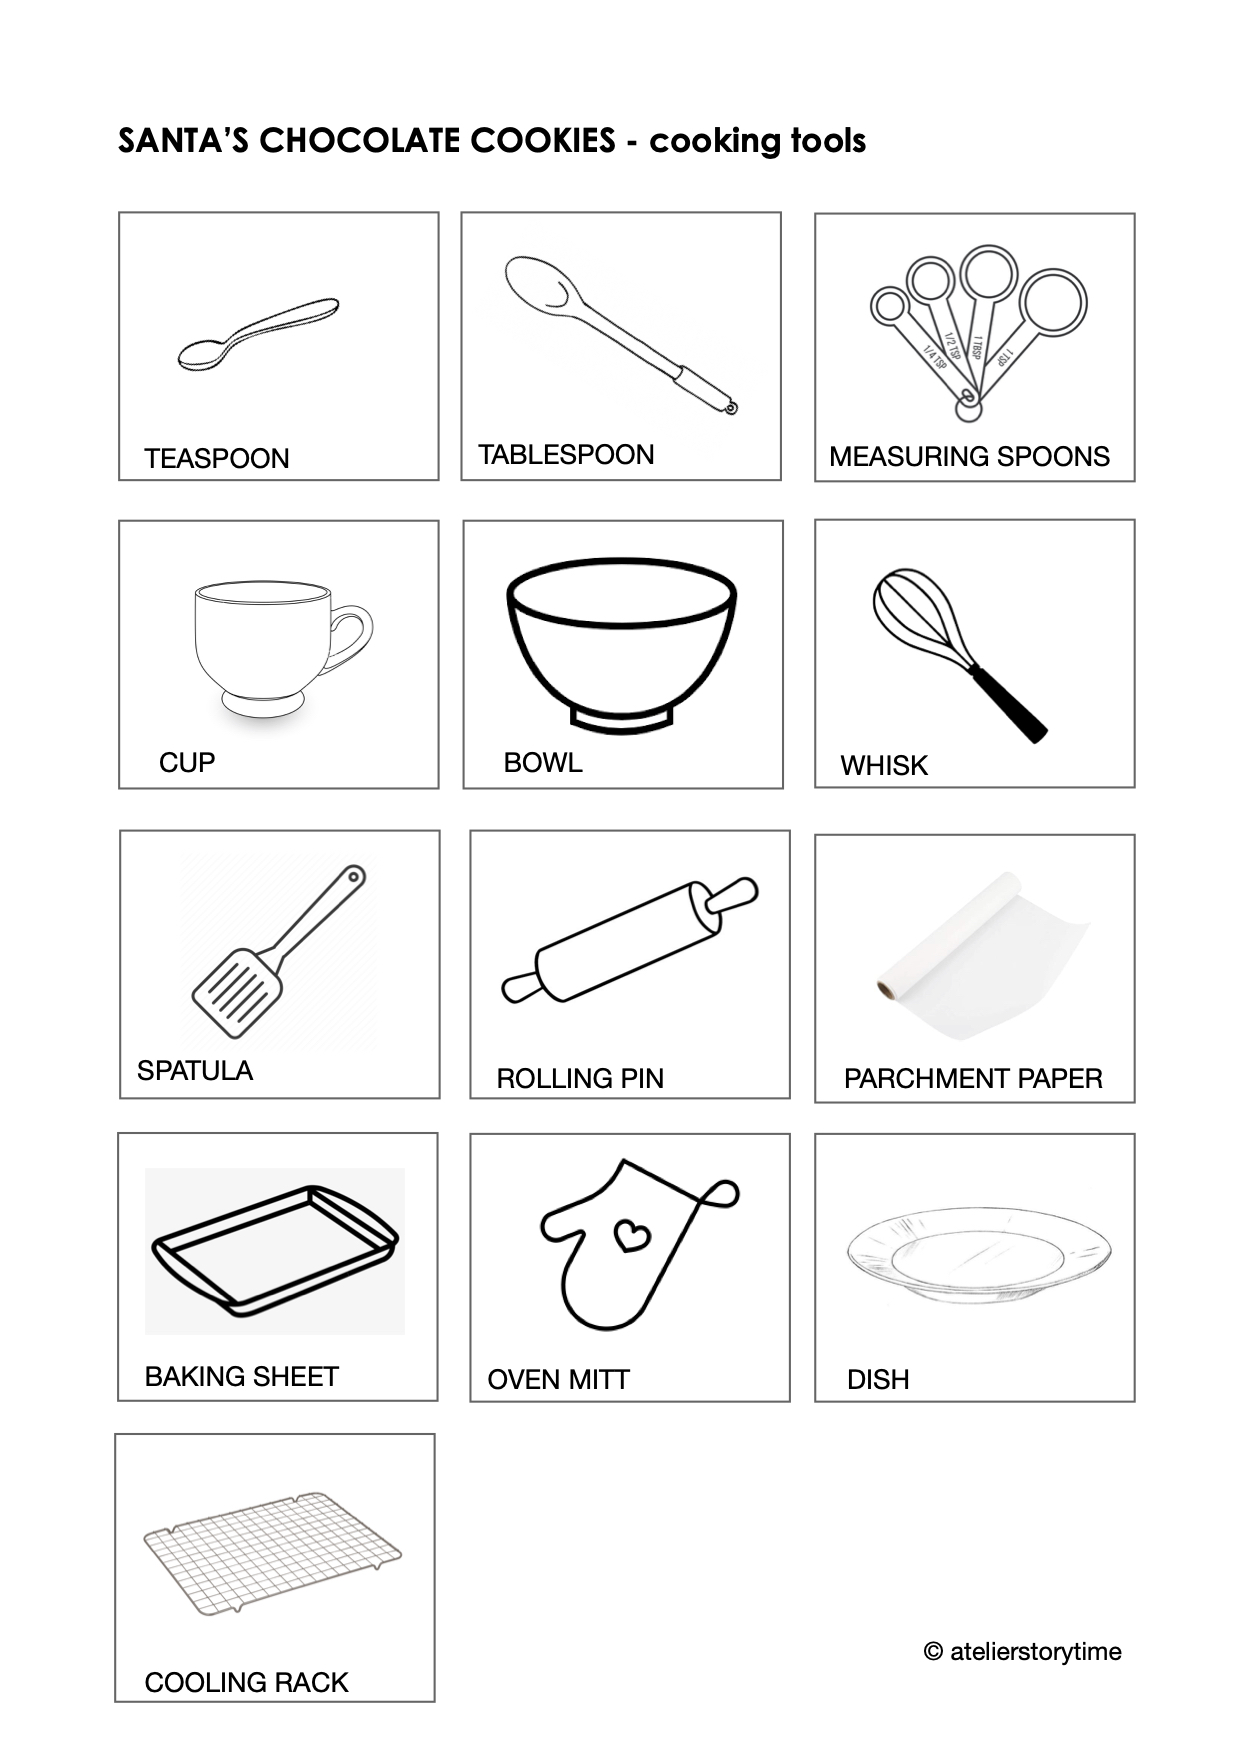 Cookies for Santa-cooking tools